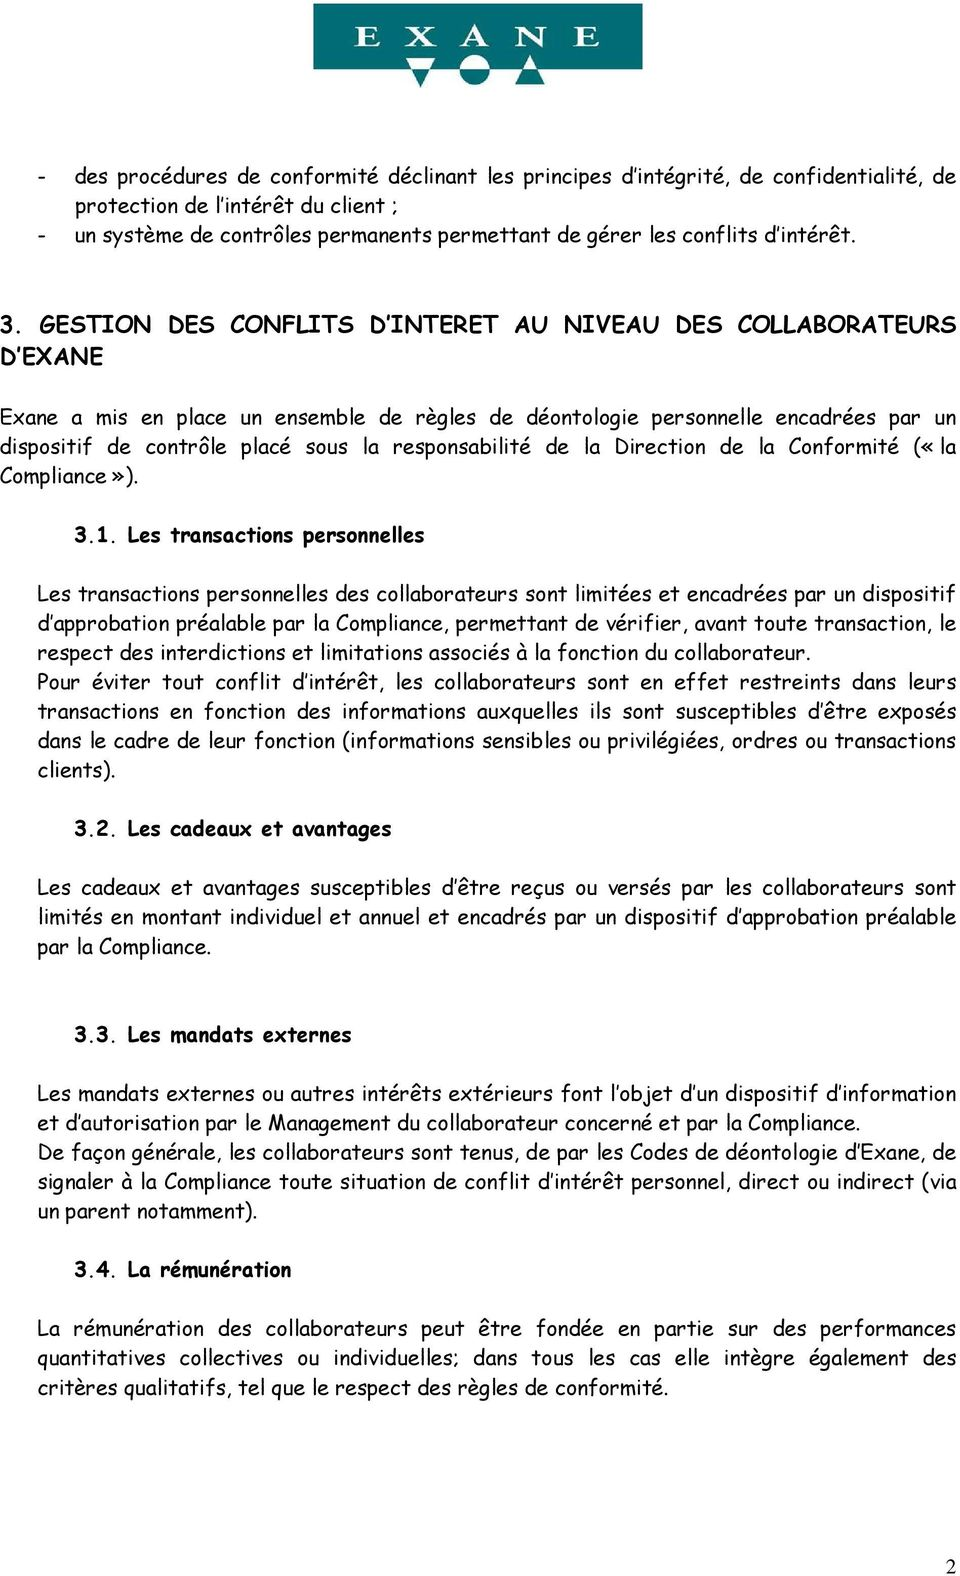 GESTION DES CONFLITS D INTERET AU NIVEAU DES COLLABORATEURS D EXANE Exane a mis en place un ensemble de règles de déontologie personnelle encadrées par un dispositif de contrôle placé sous la